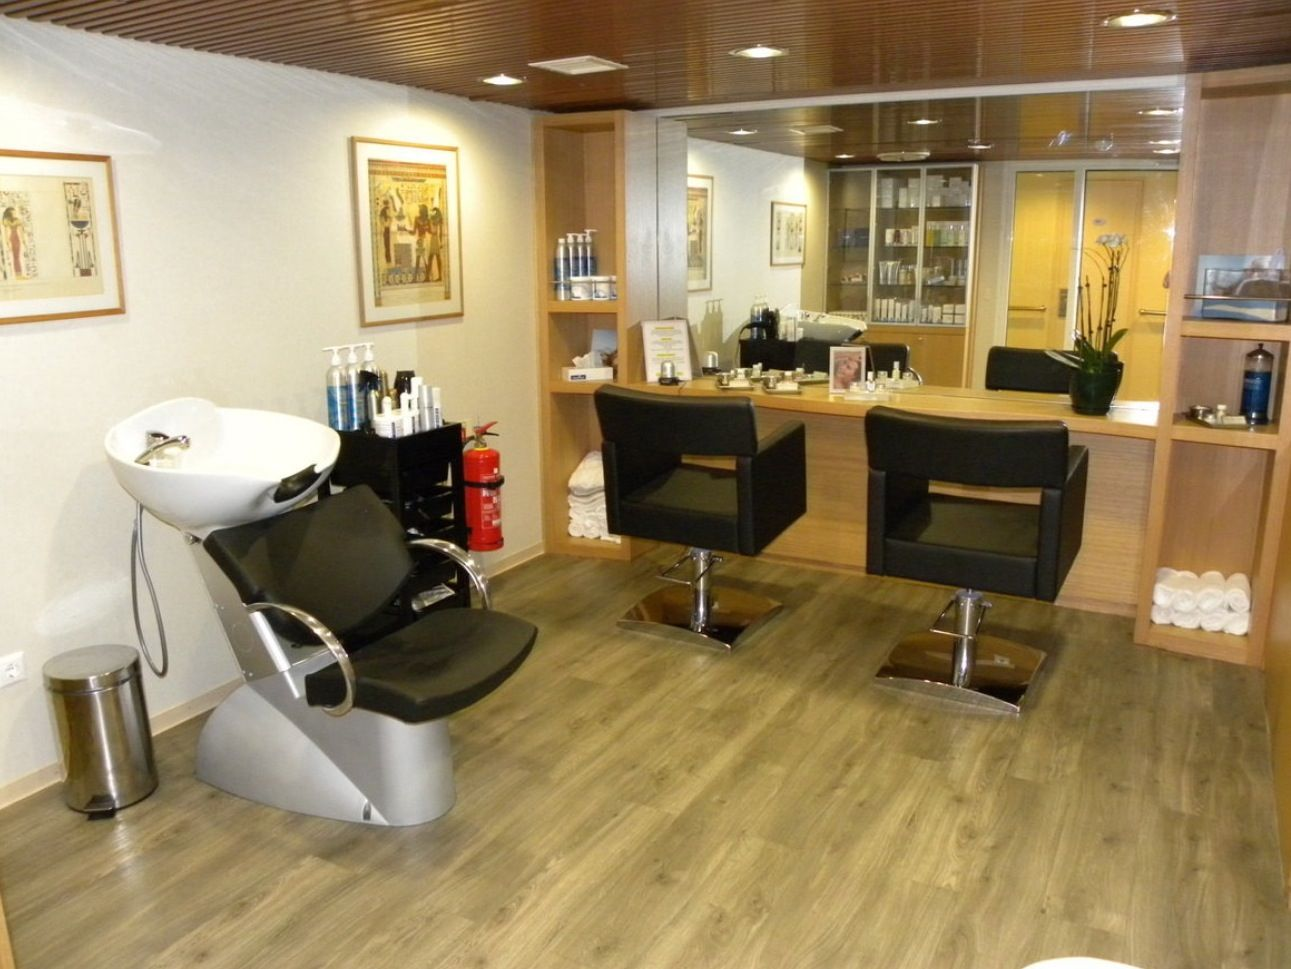 Beauty Hair Salon Small Salon Perfect Want Want Want Just For Me